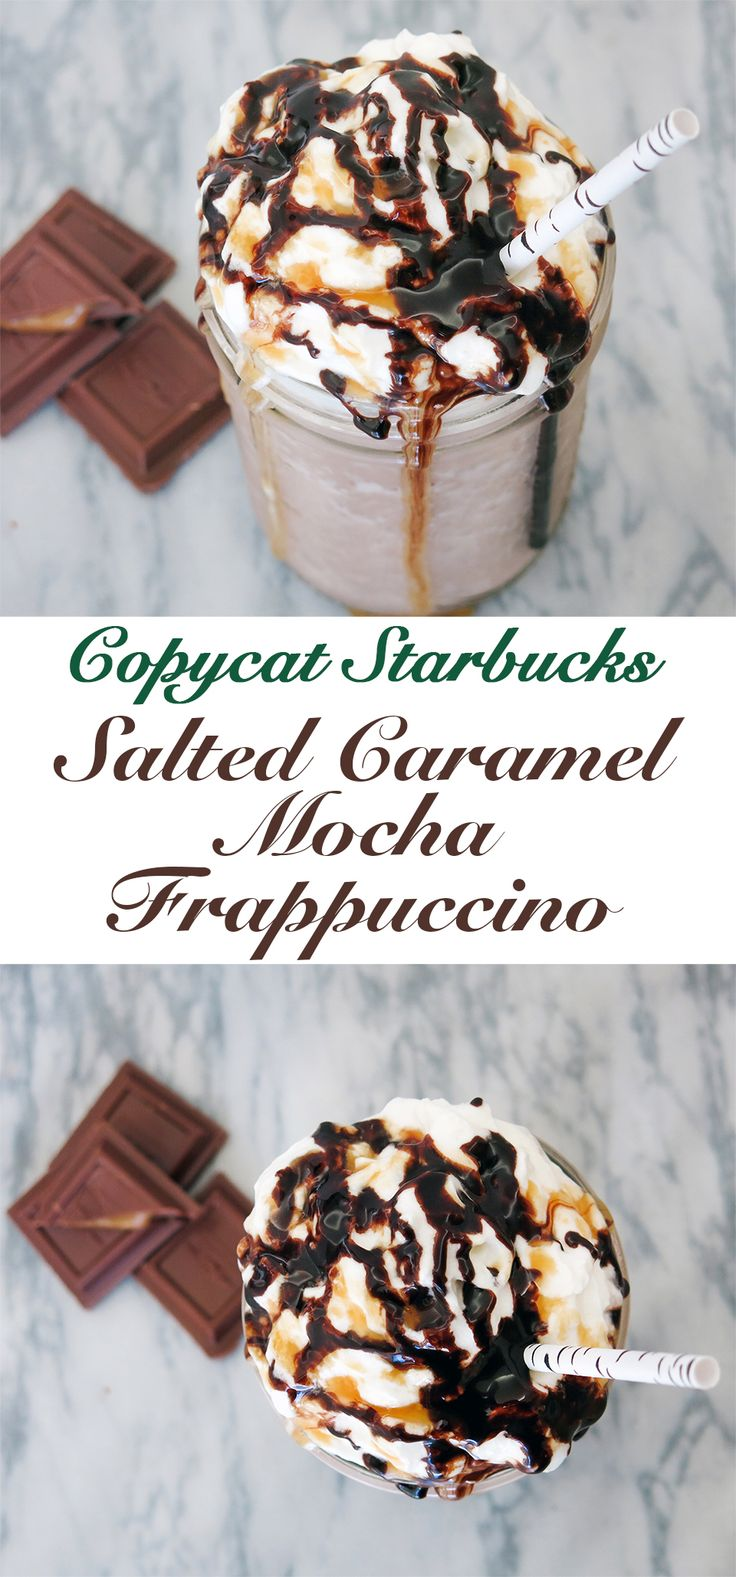 Starbucks copycat recipe — the perfect fall treat!